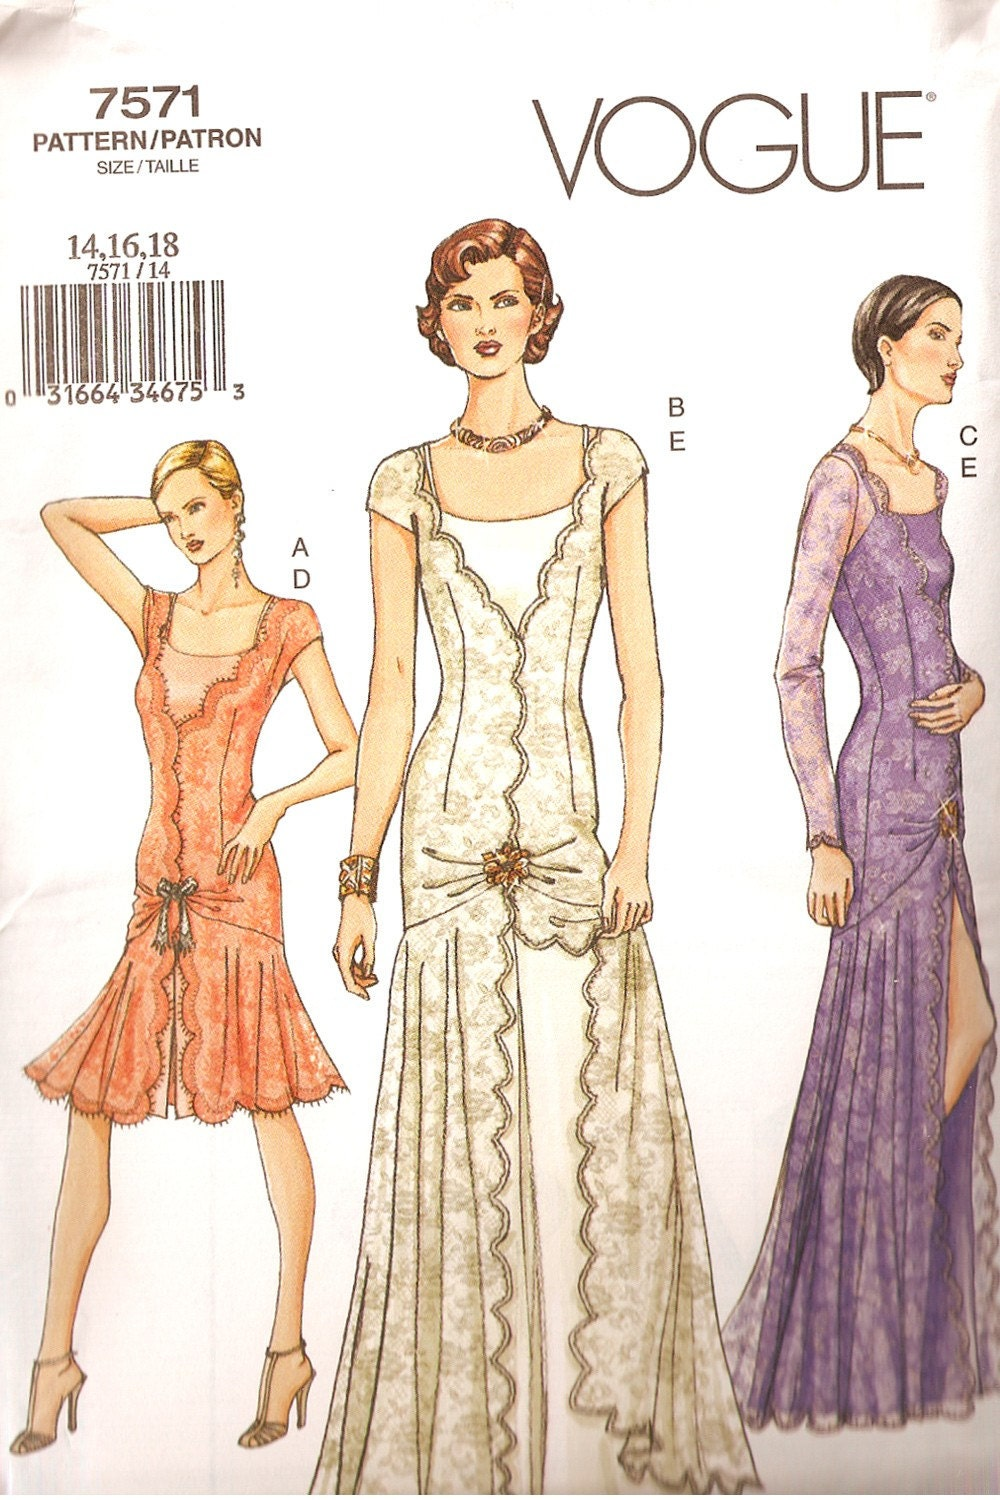 Vogue 7571 flapper dress pattern size 14-16-18 by abeadles on Etsy